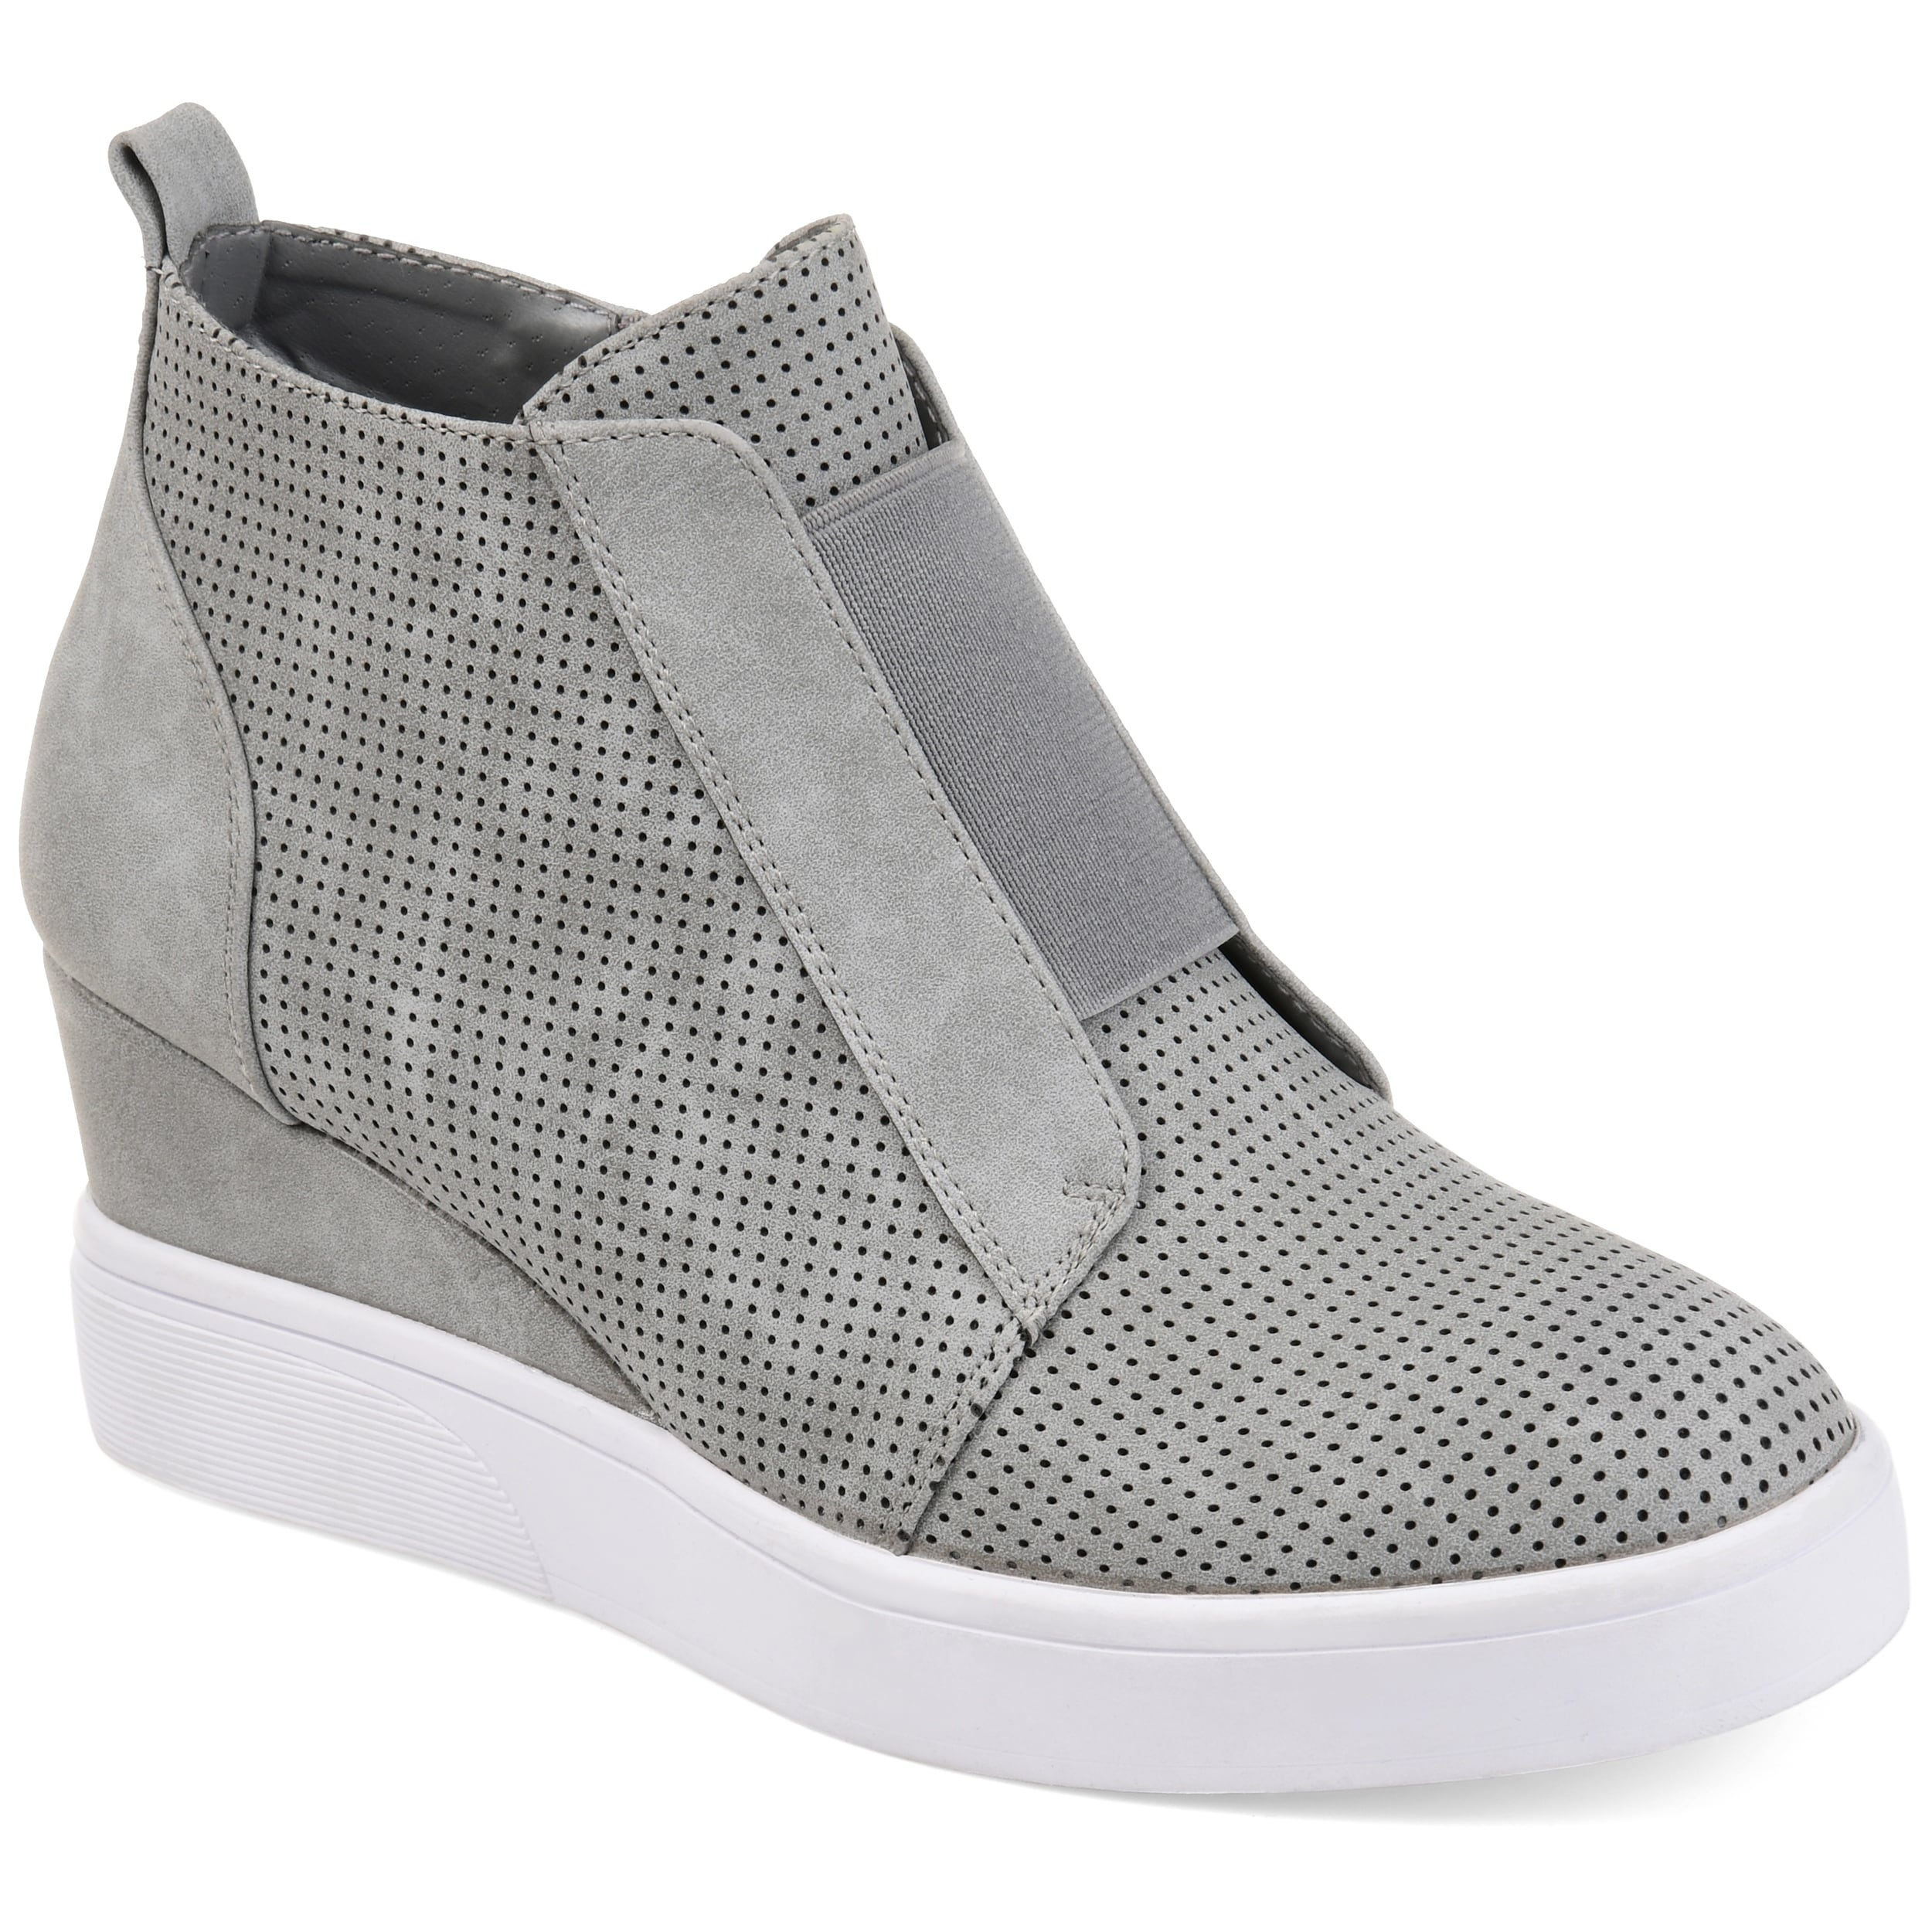 2dc0eab74b4 Shop Journee Collection Women s  Clara  Athleisure Laser-cut Sneaker Wedges  - Free Shipping Today - Overstock - 20874053